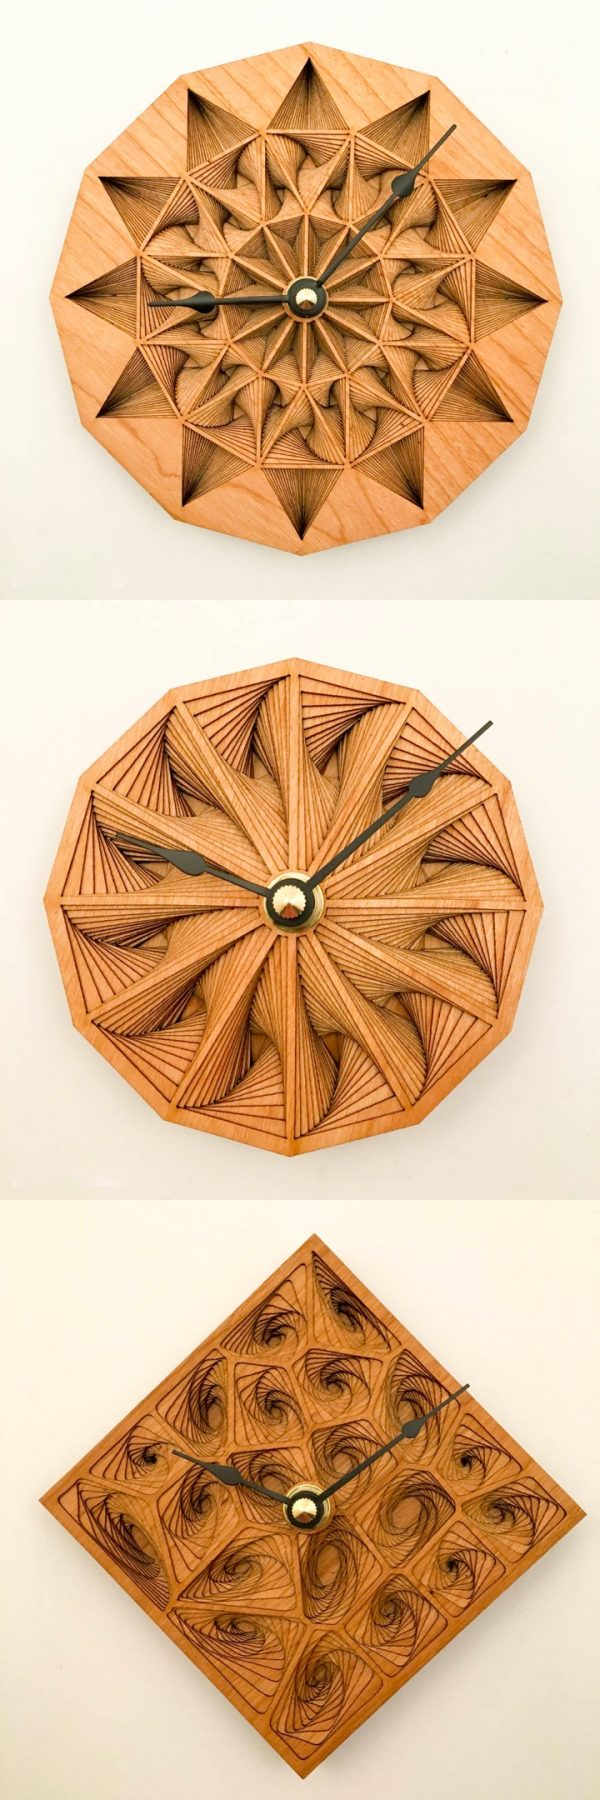 engraved-wooden-wall-clock-designs-600x1800